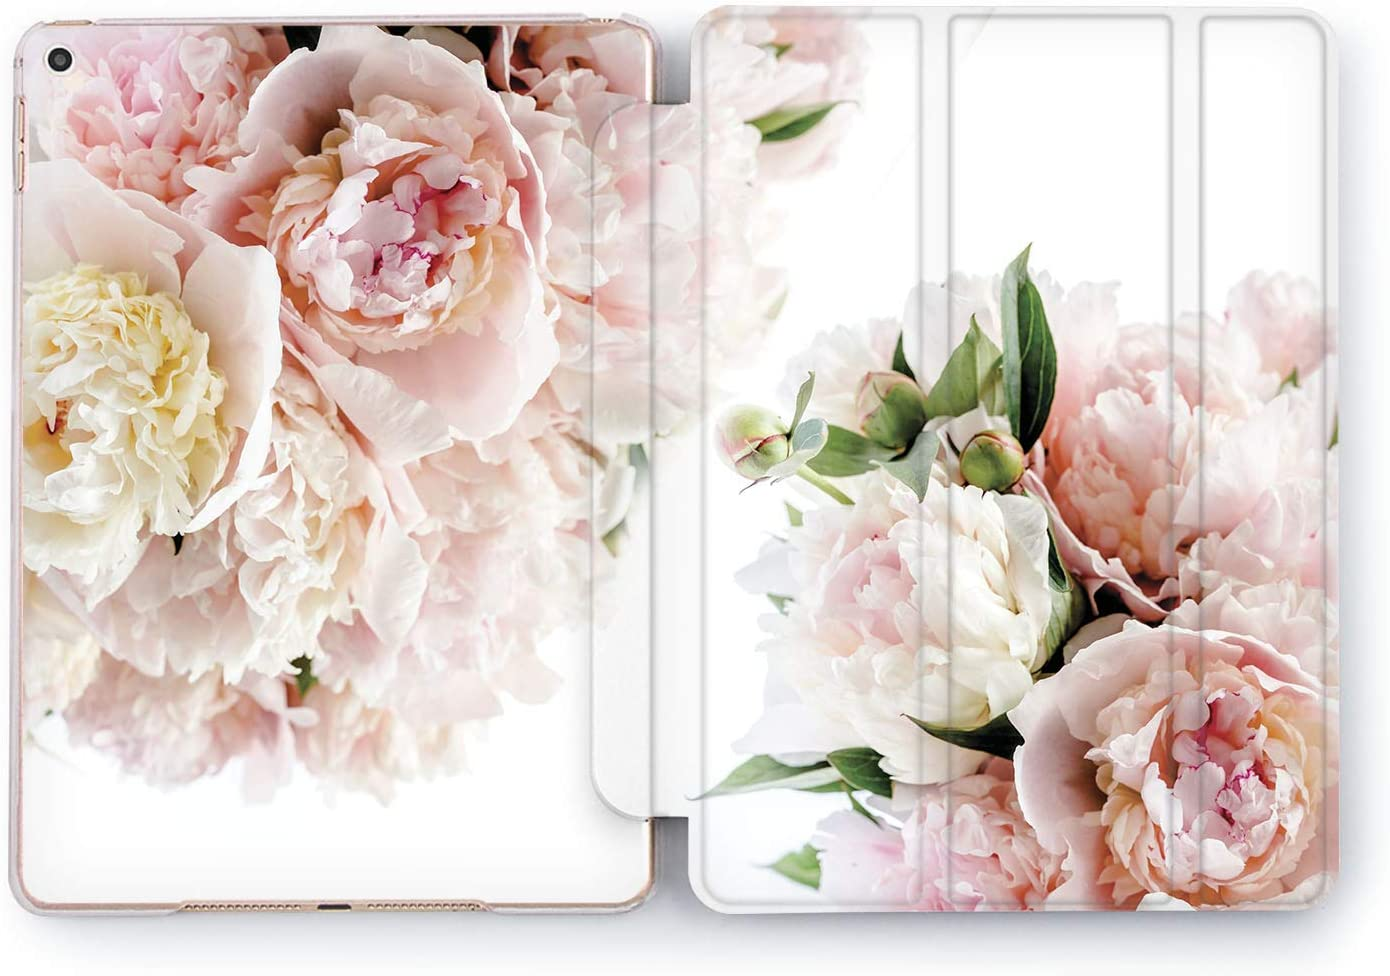 Wonder Wild Case Compatible with Apple iPad Cover Painted Rose Pro 9.7 inch Leaves Pastel Flower Pink Mini 1 2 3 4 Air 2 10.5 12.9 Tablet 11 10.2 5th 6th Plants Red Colorful Pattern Floral Watercolor